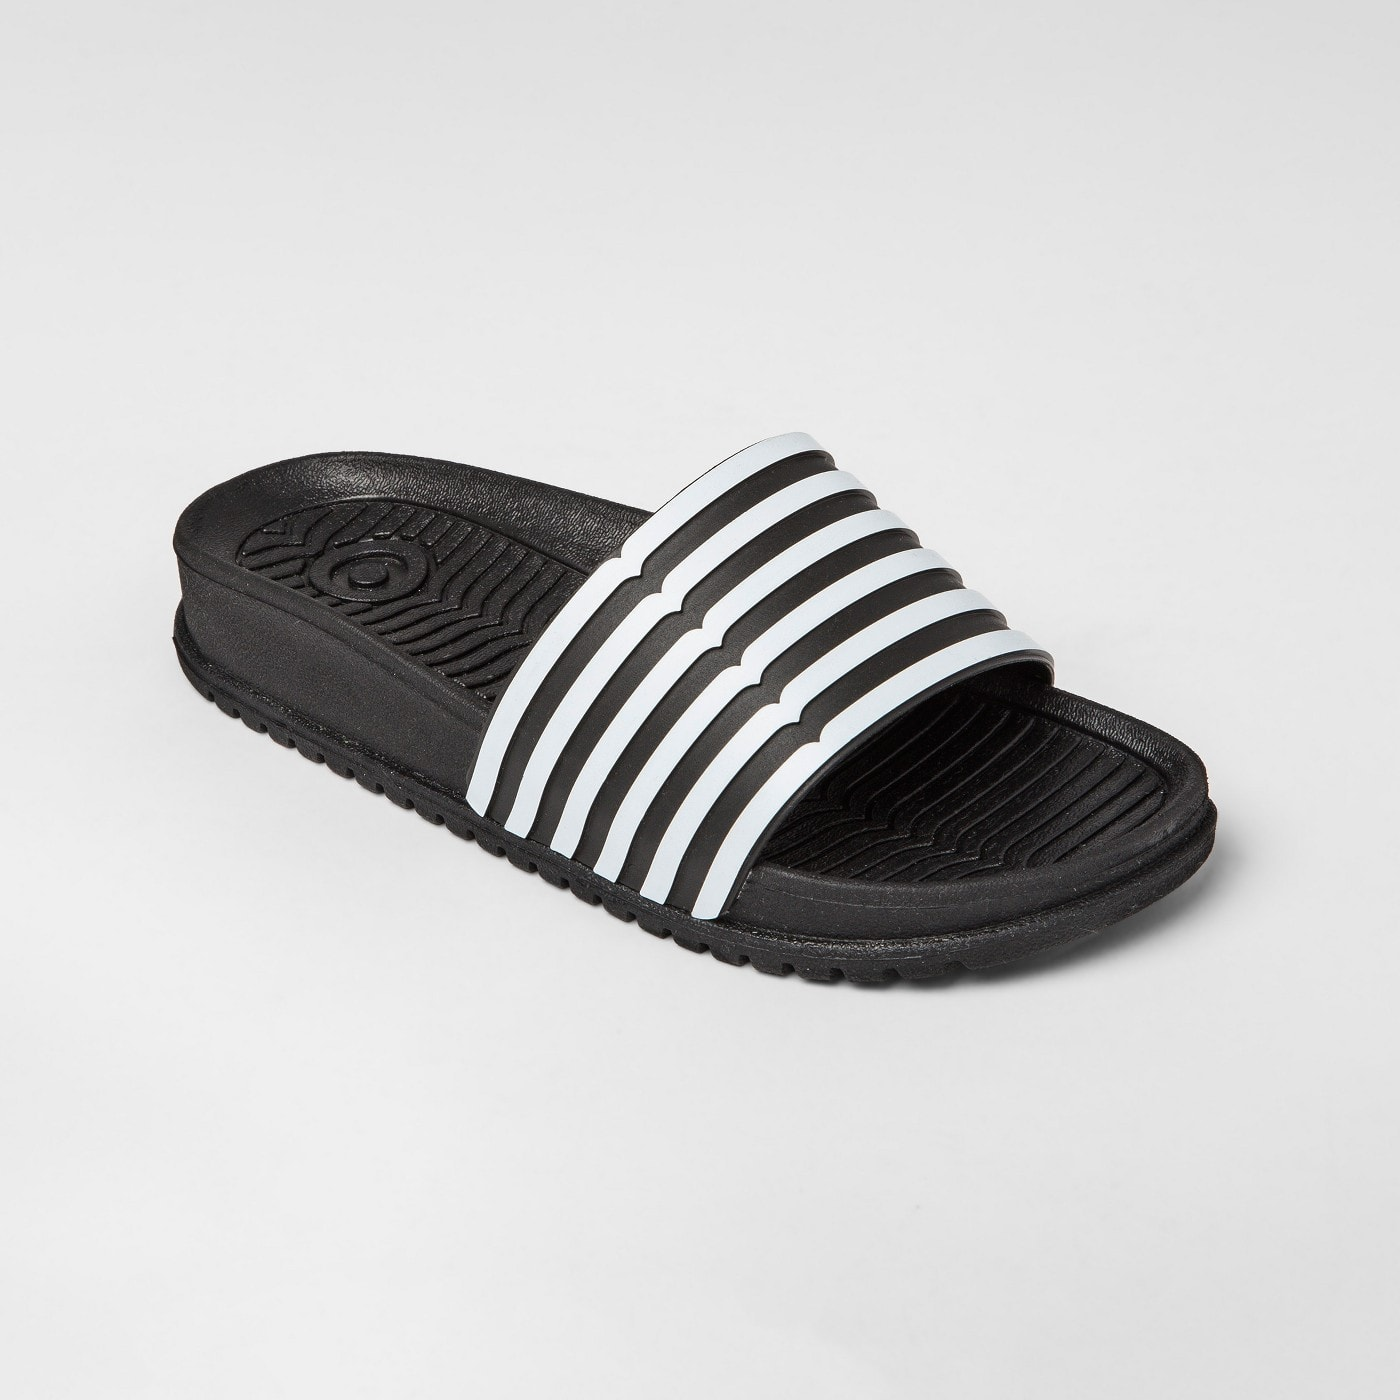 Hunter for Target Slide Sandals (men, women, children) + more from Hunter for Target (FS with $25+) $7.5